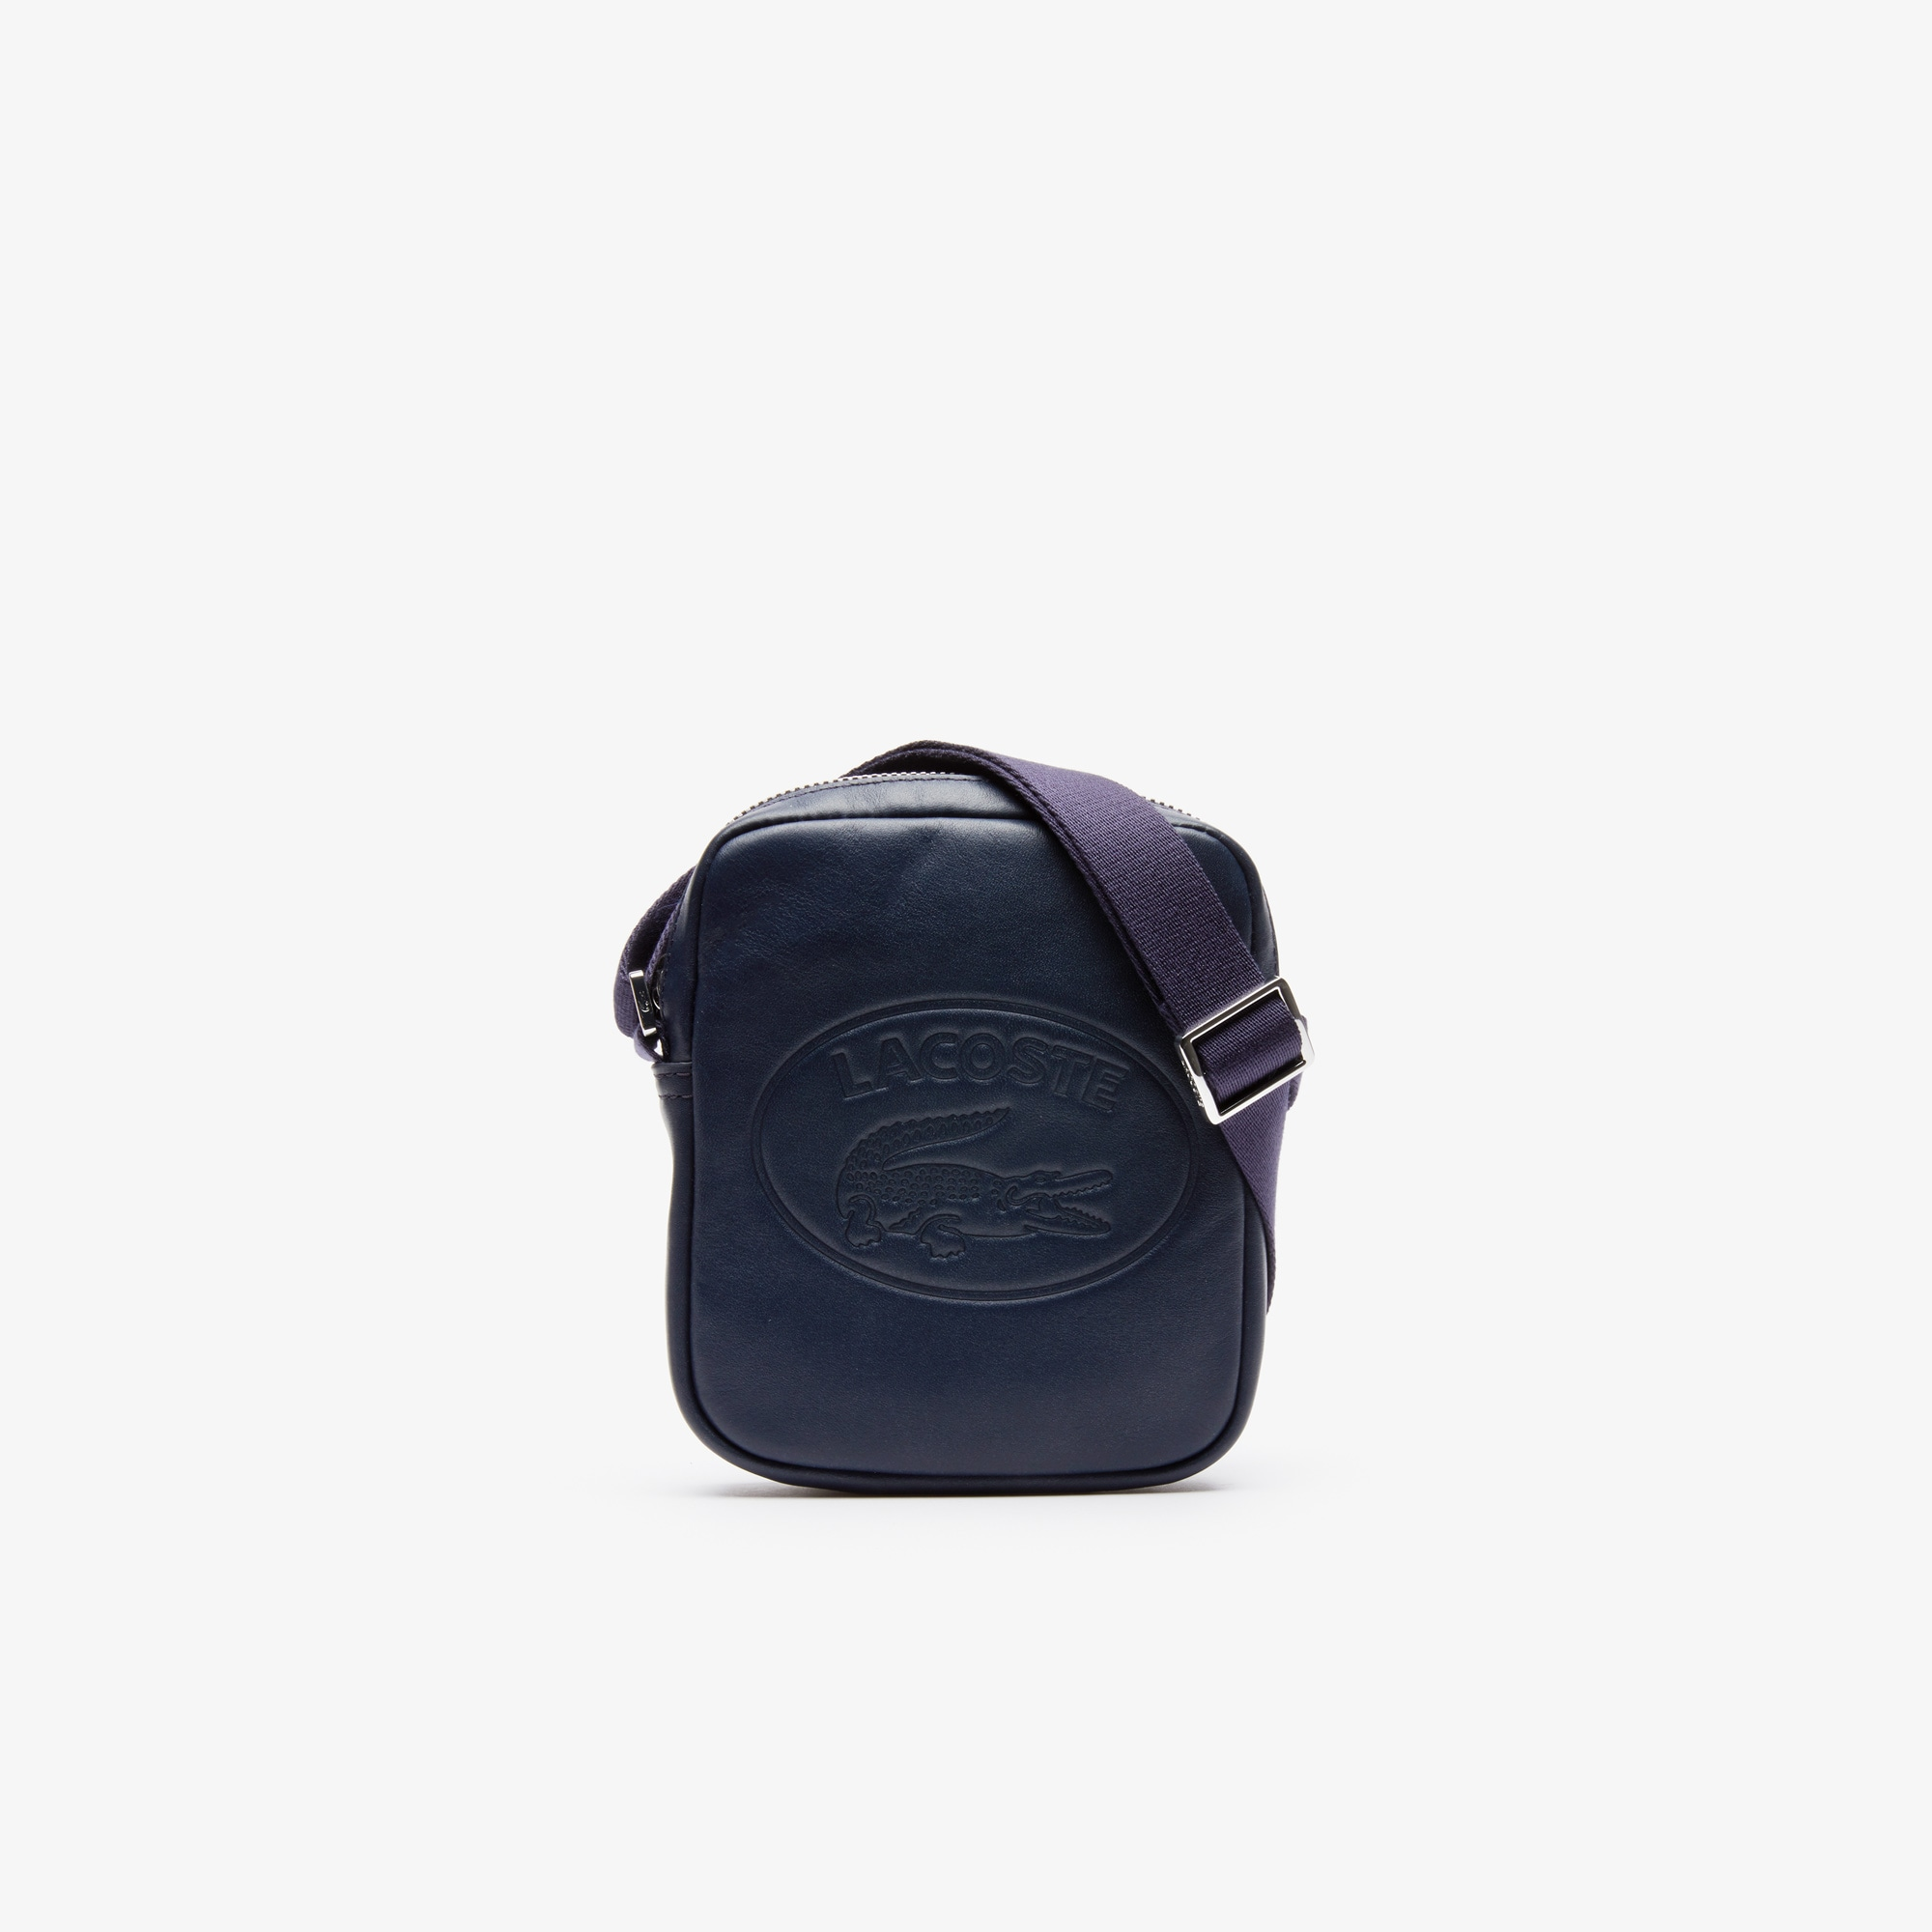 7acc7a05e4b Backpacks & Bags for men | Leather goods | LACOSTE